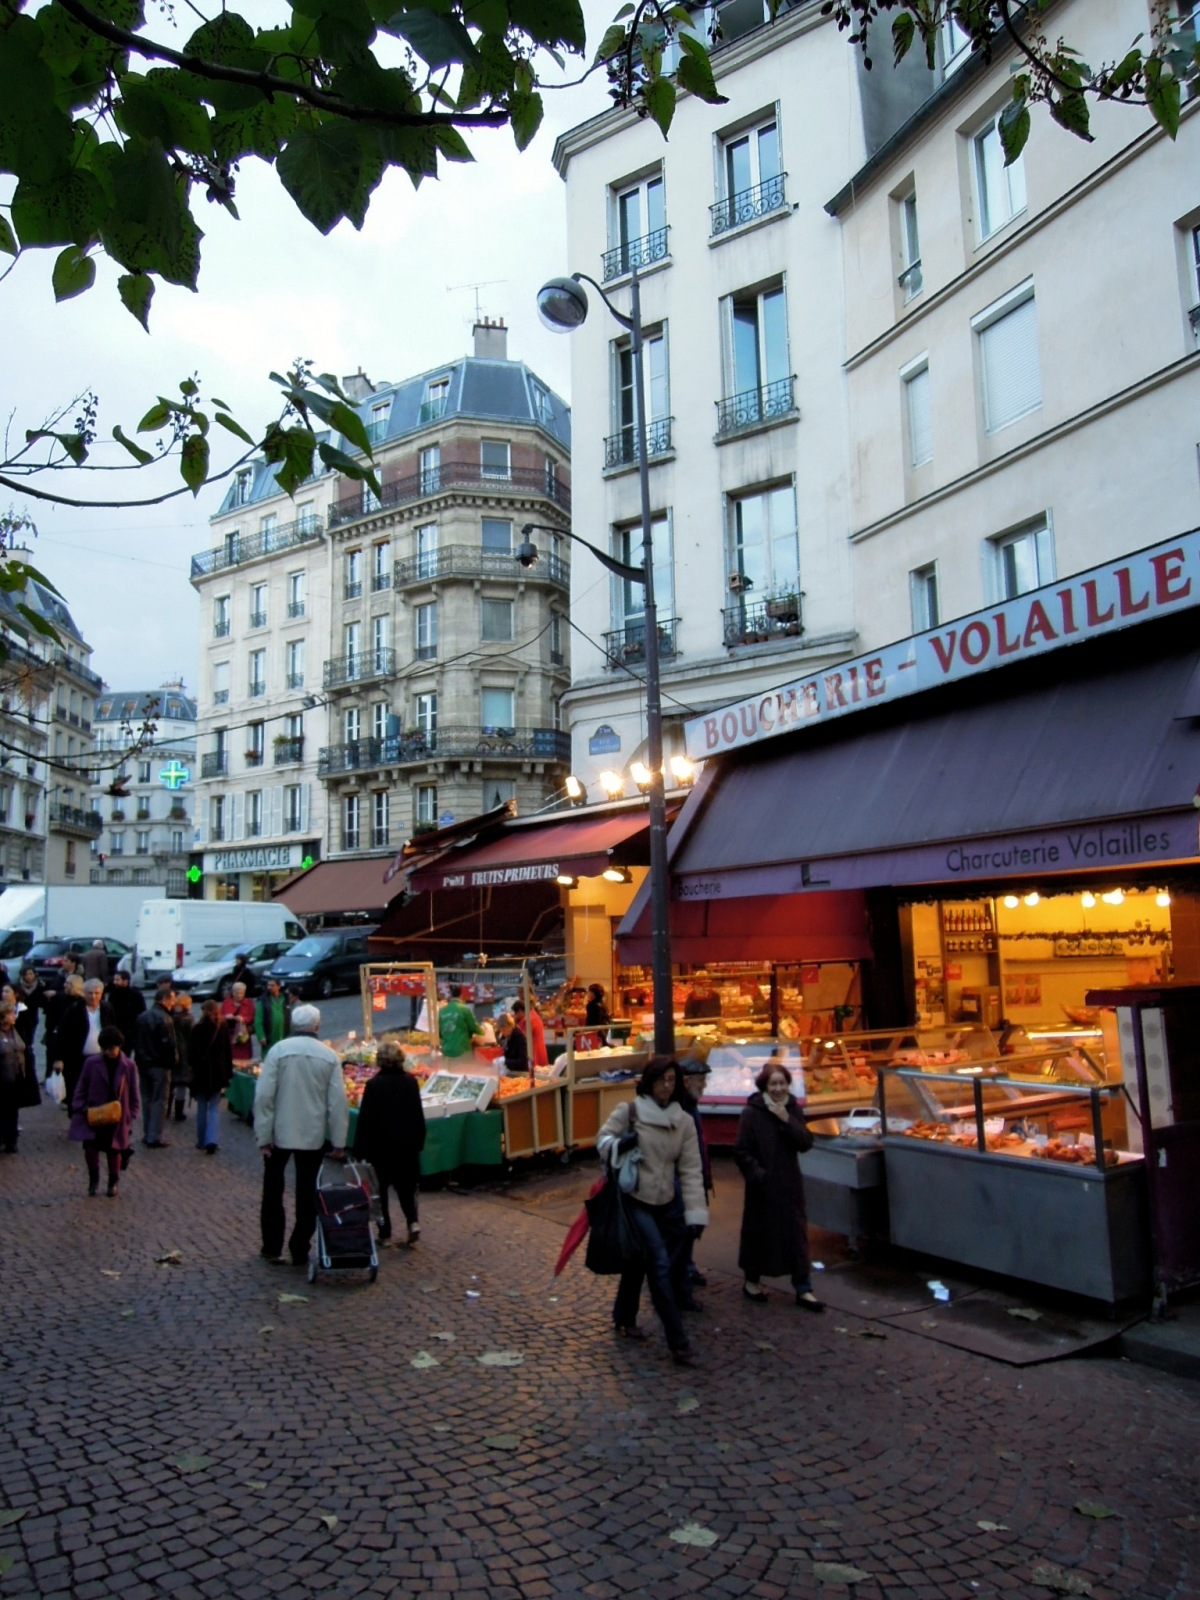 At the foot of Rue Mouffetard